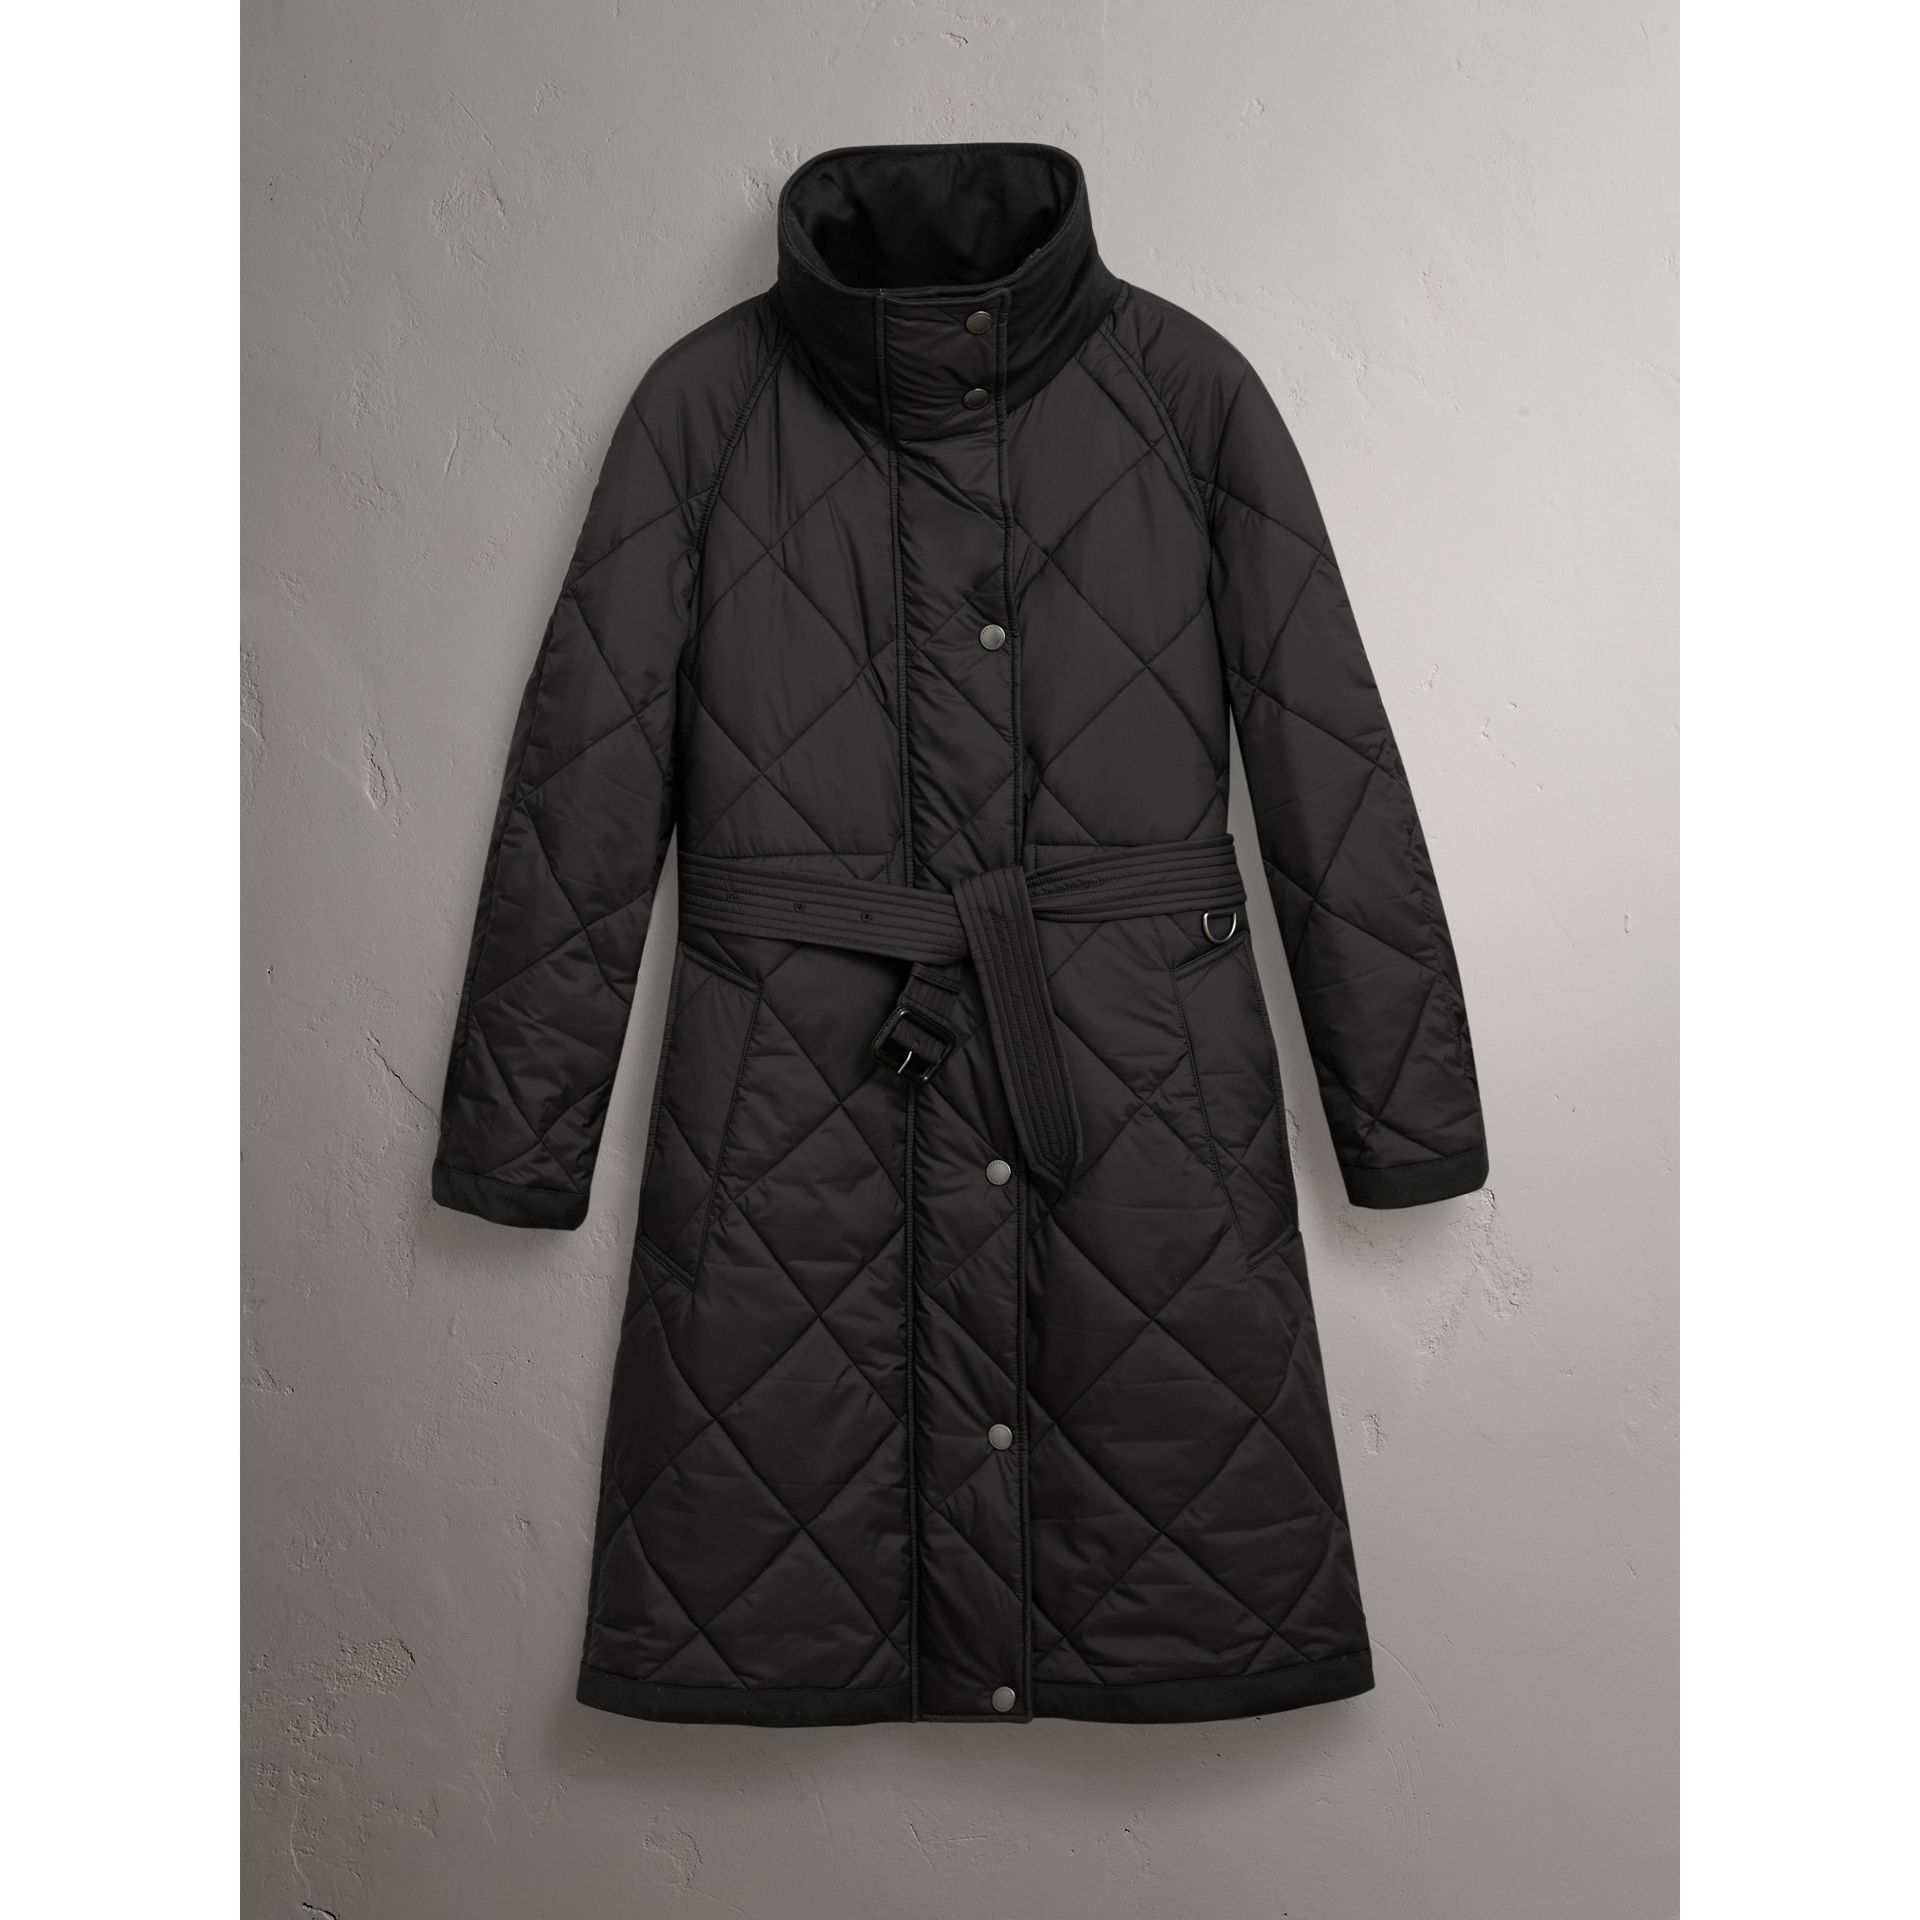 Packaway Hood Diamond Quilted Coat in Black - Women | Burberry - gallery image 3